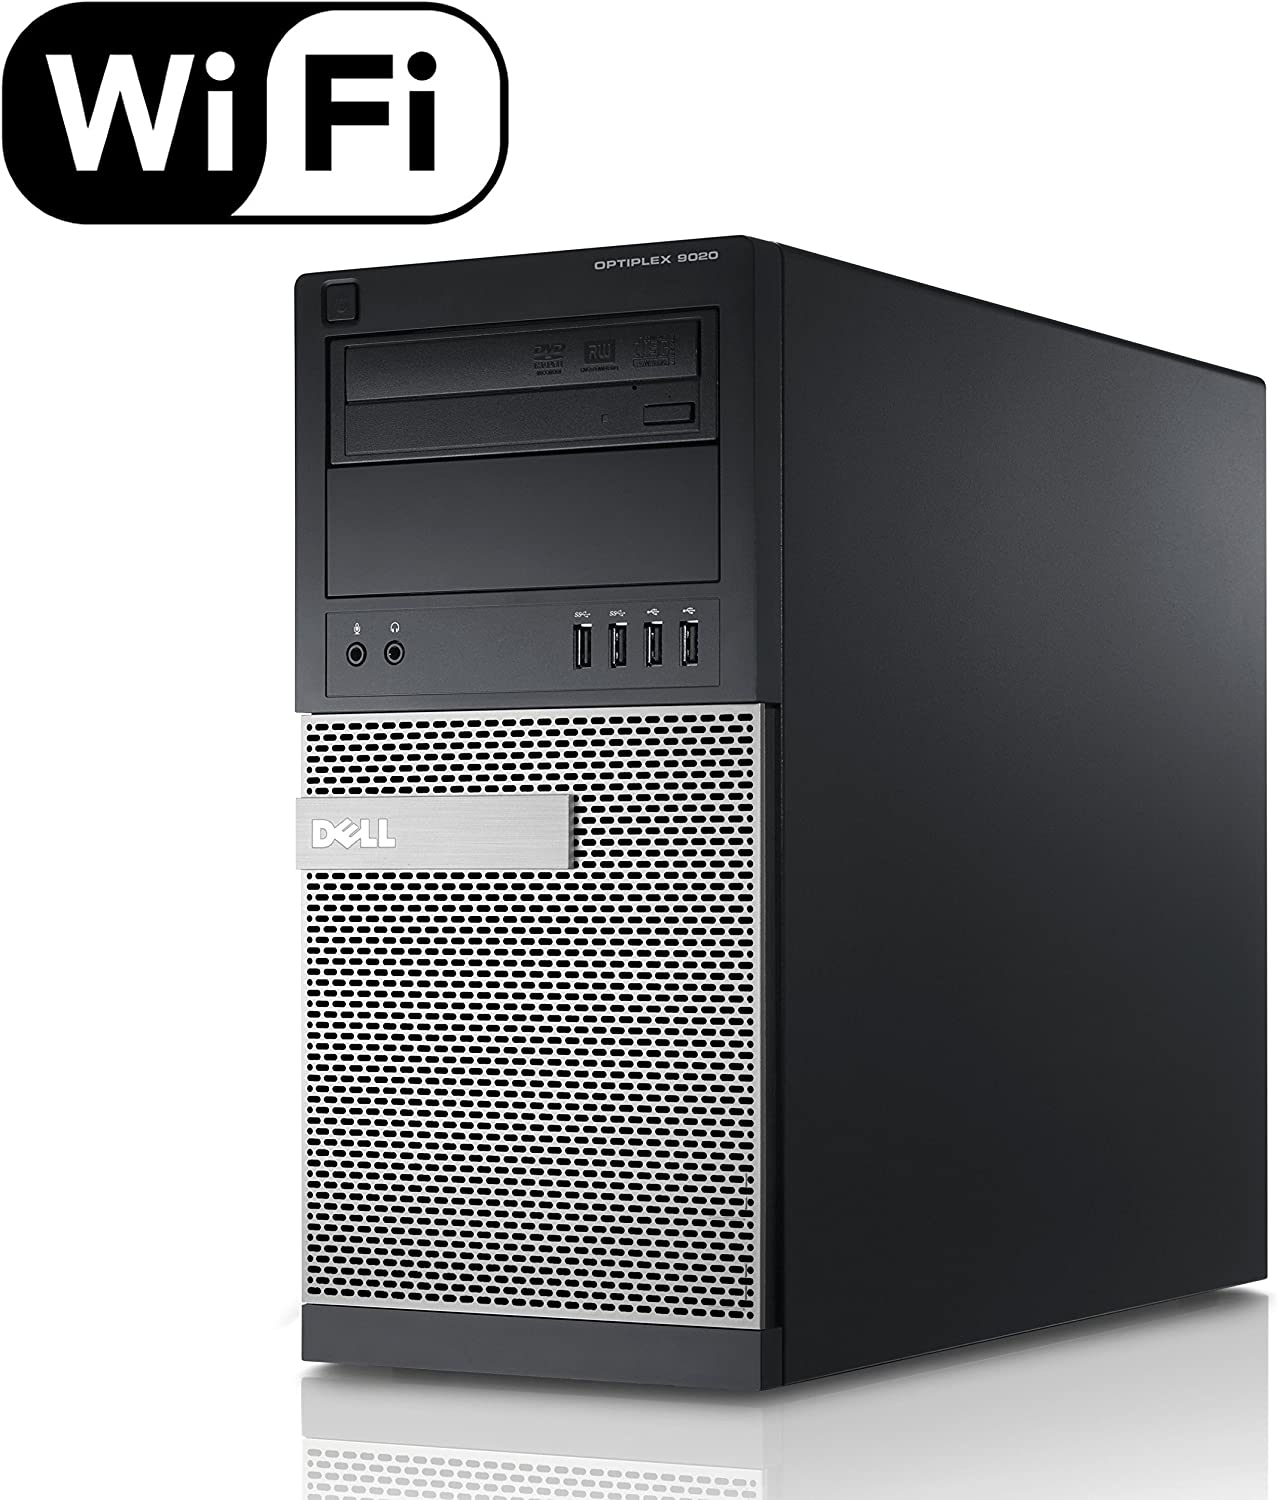 Flagship Dell Optiplex 9020 Small Form Factor Business Desktop - Intel Quad-Core i5-4590 up to 3.7GHz, 8GB DDR3, 256GB SSD, DVD±RW, WLAN, USB 3.0, Keyboard/Mouse Included,Windows 7/10 Pro